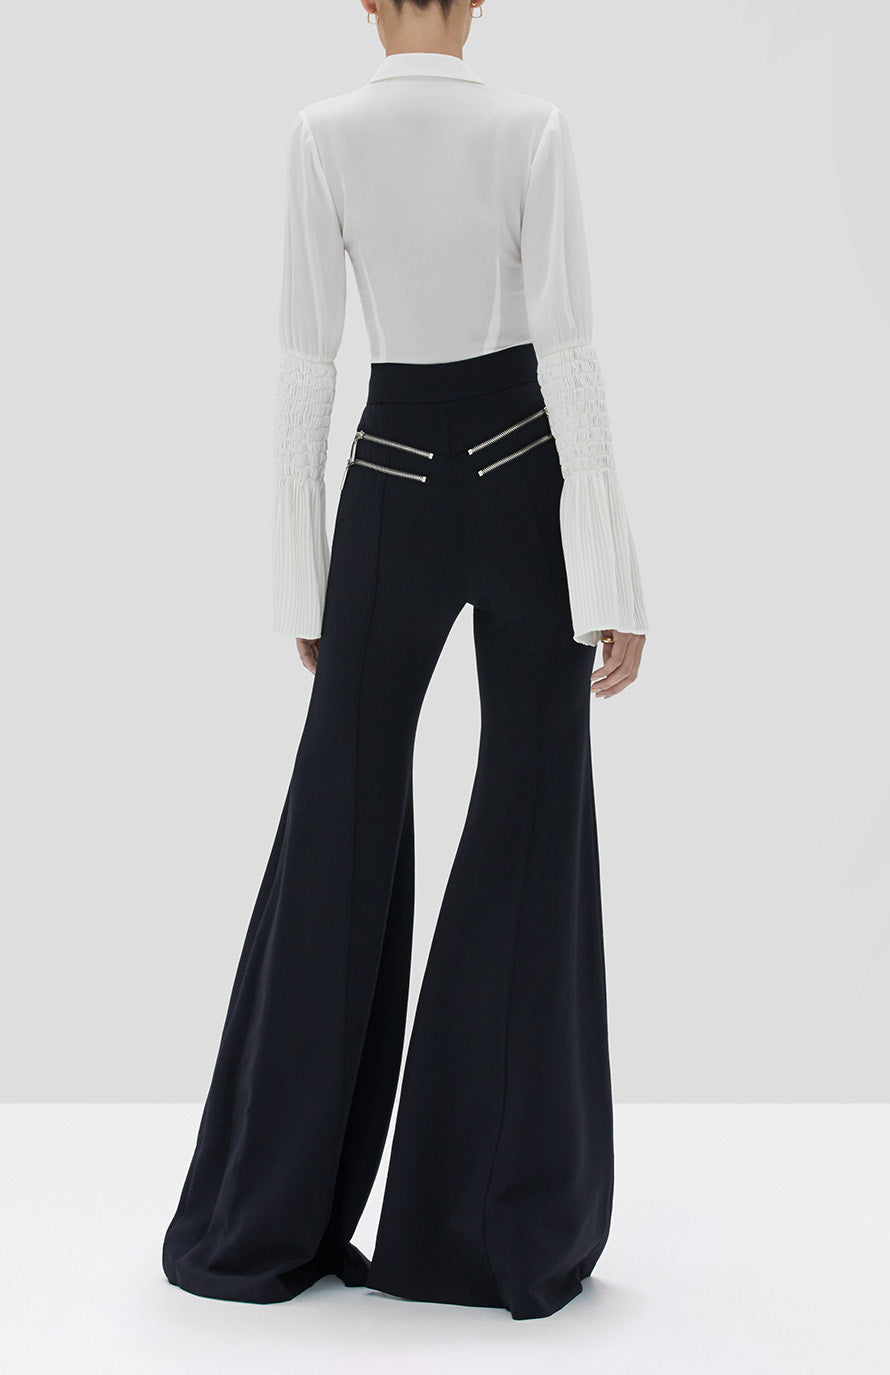 Alexis Chantal Top White and Donlow Pant Black from the Fall Winter 2019 Ready To Wear Collection - Rear View